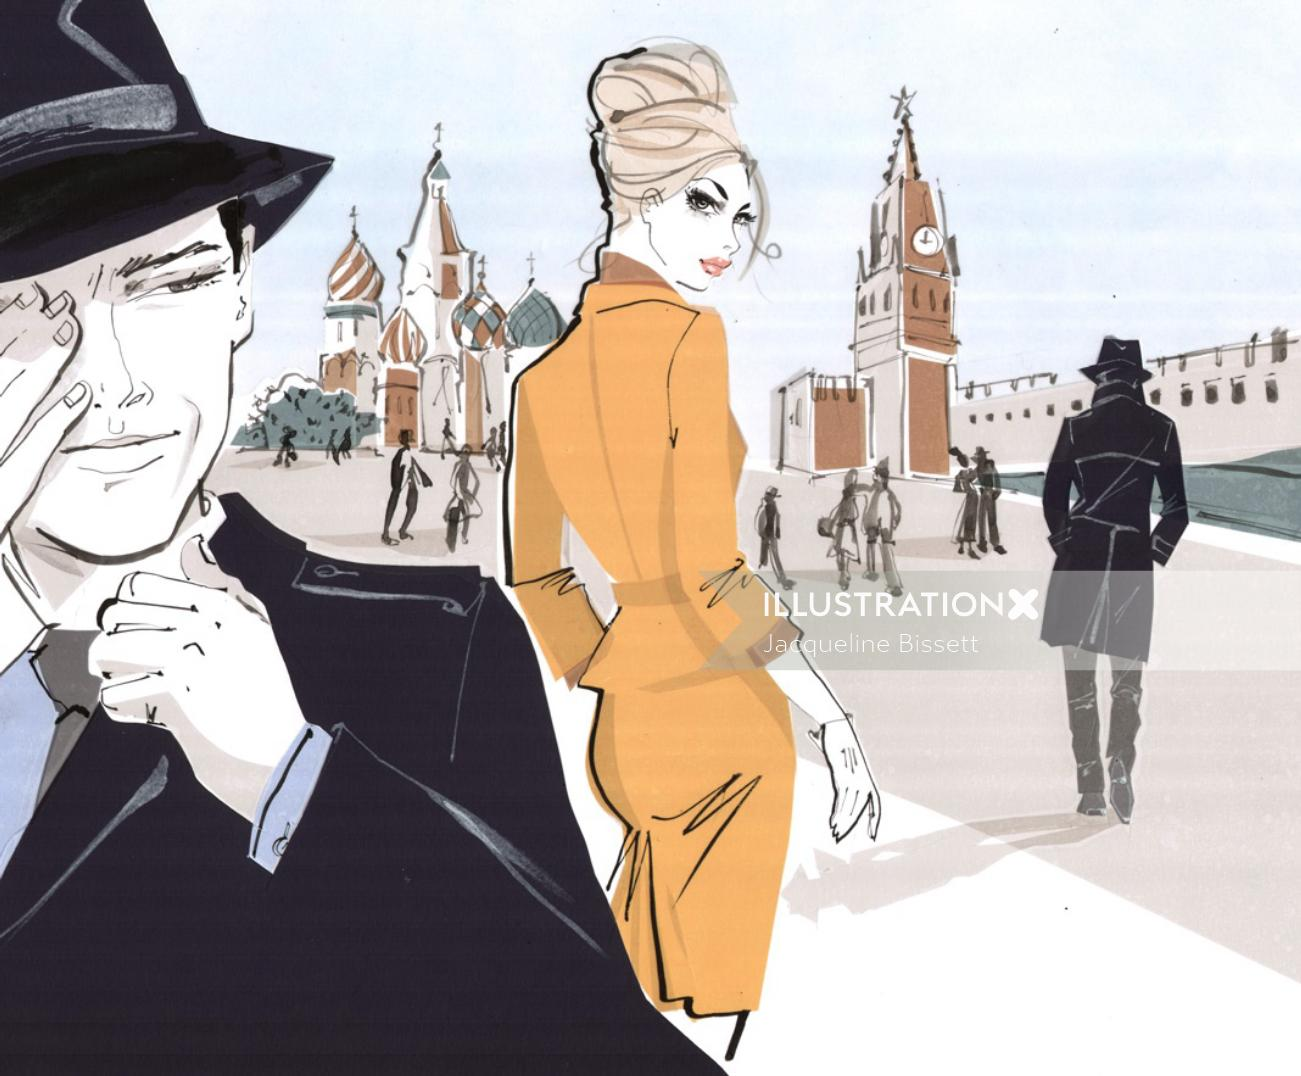 Black Hat wearing Guy with Lady - Sketch